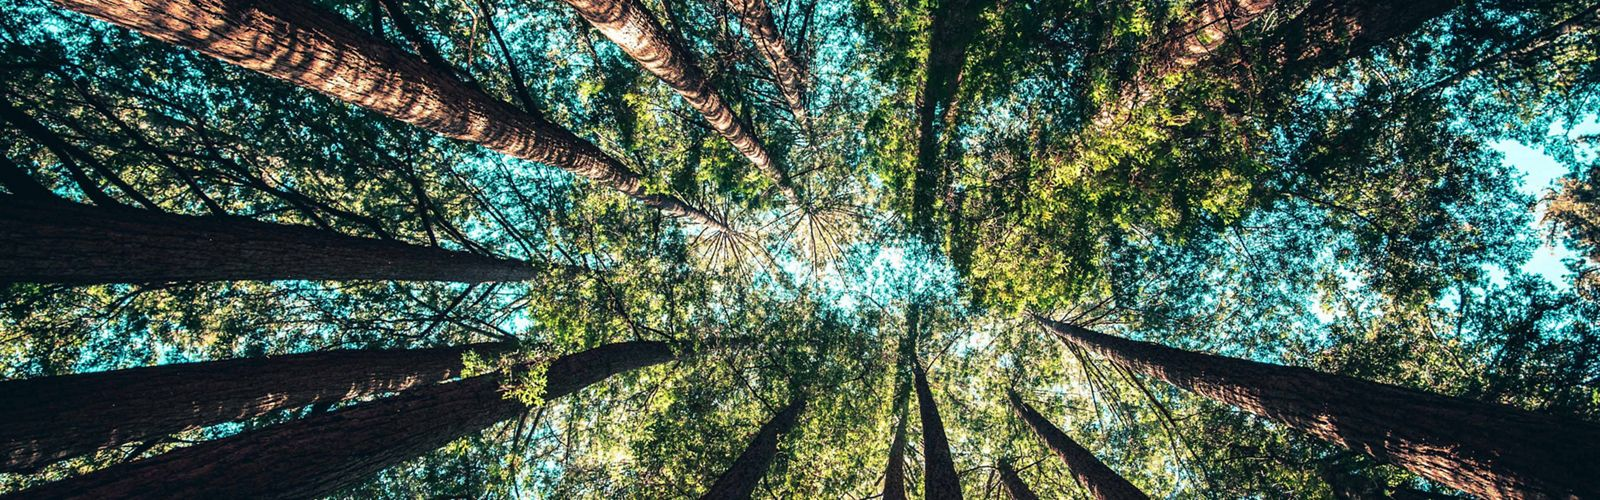 Photo looking up at a canopy of mixed hardwood trees.